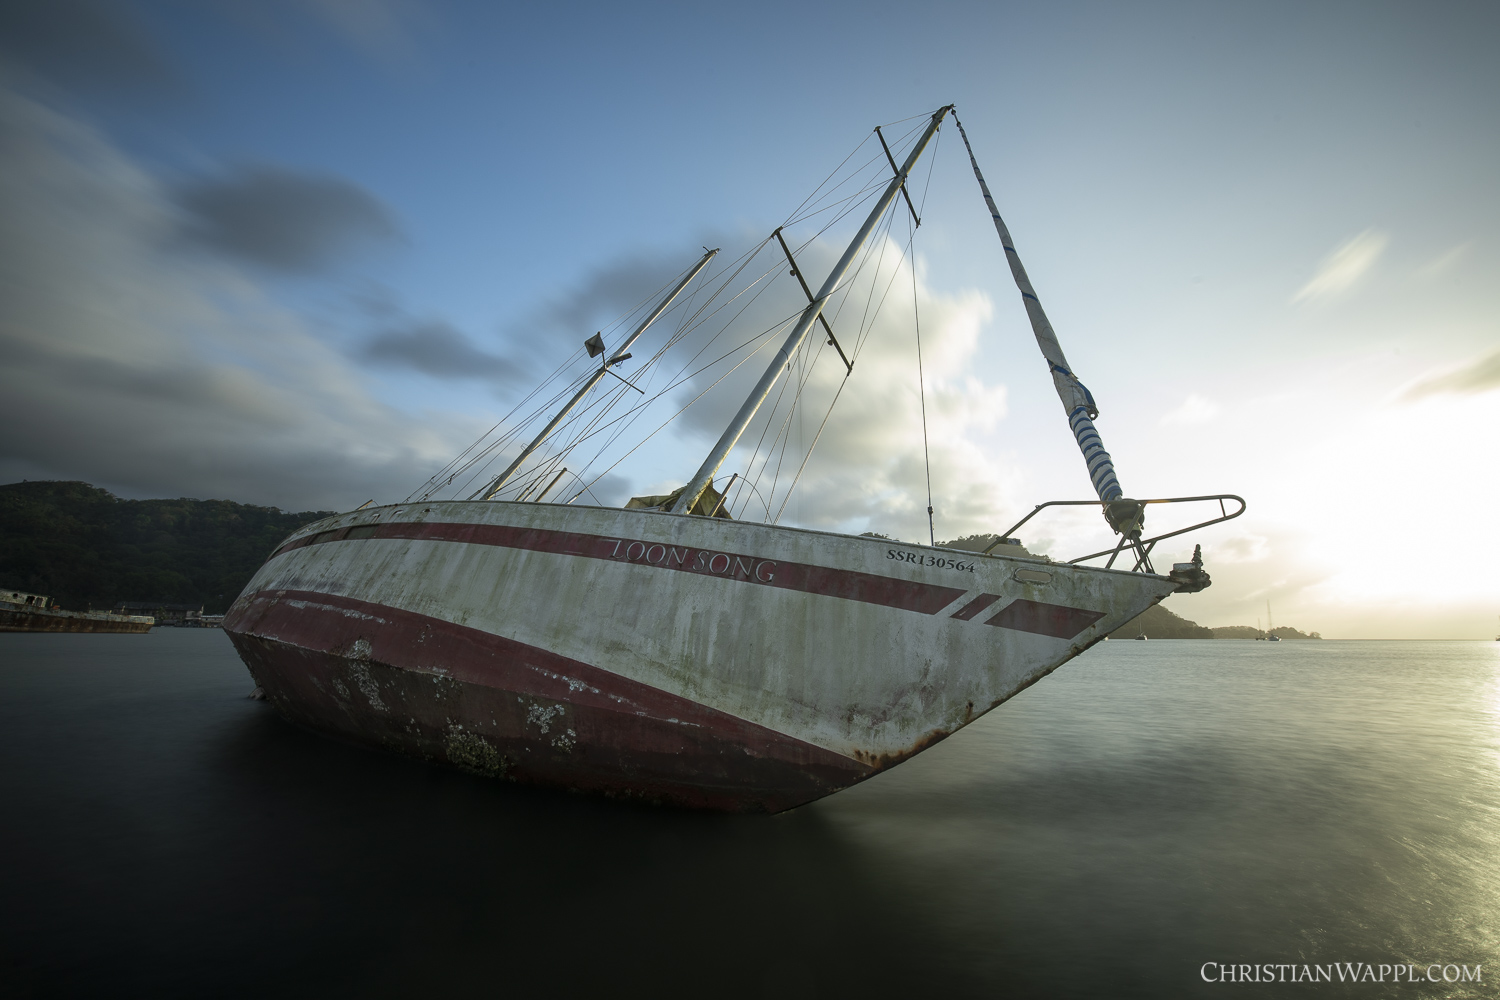 Wreck of the S/Y  Loonsong